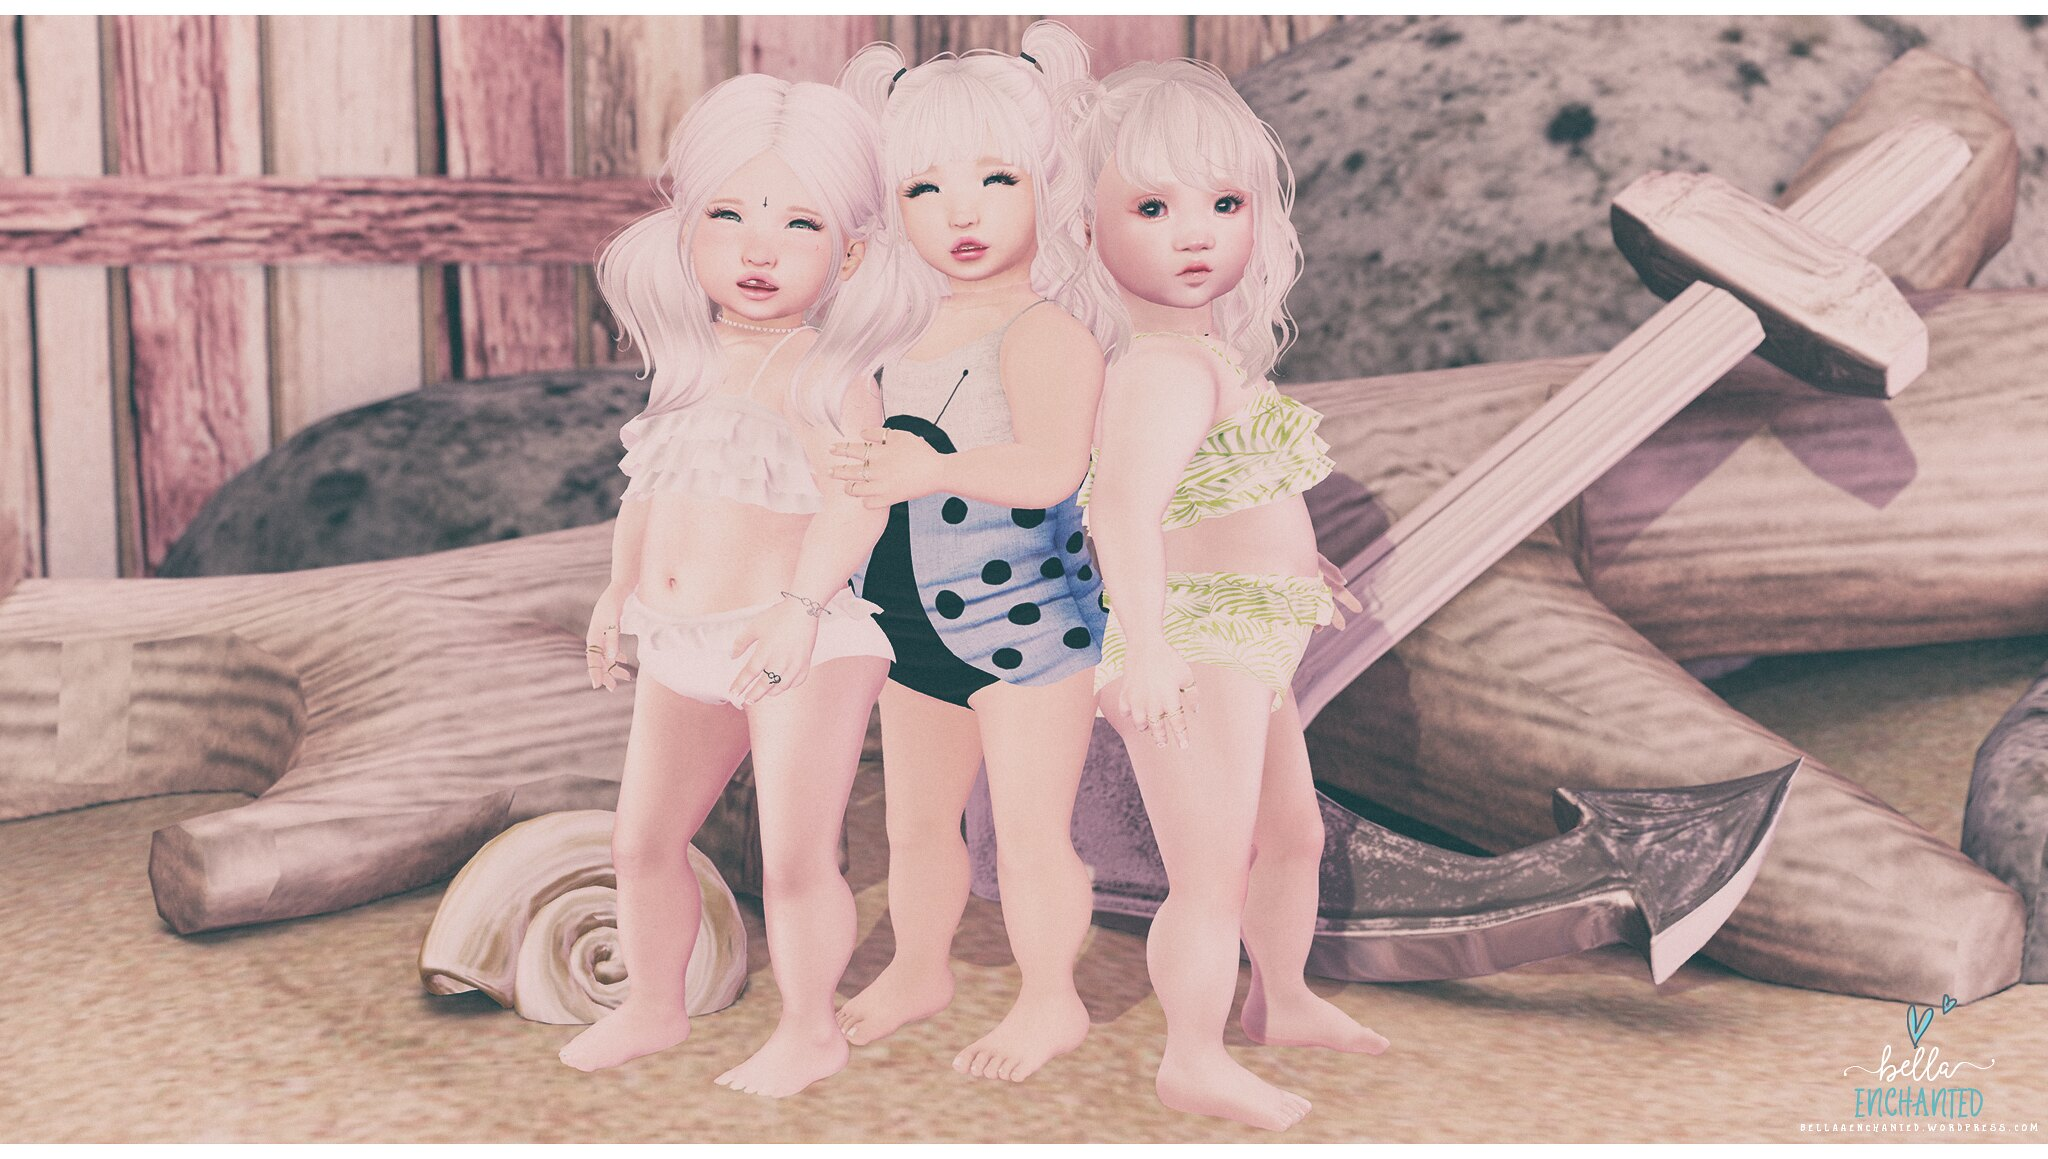 186 ʚ Summer is here! ɞ